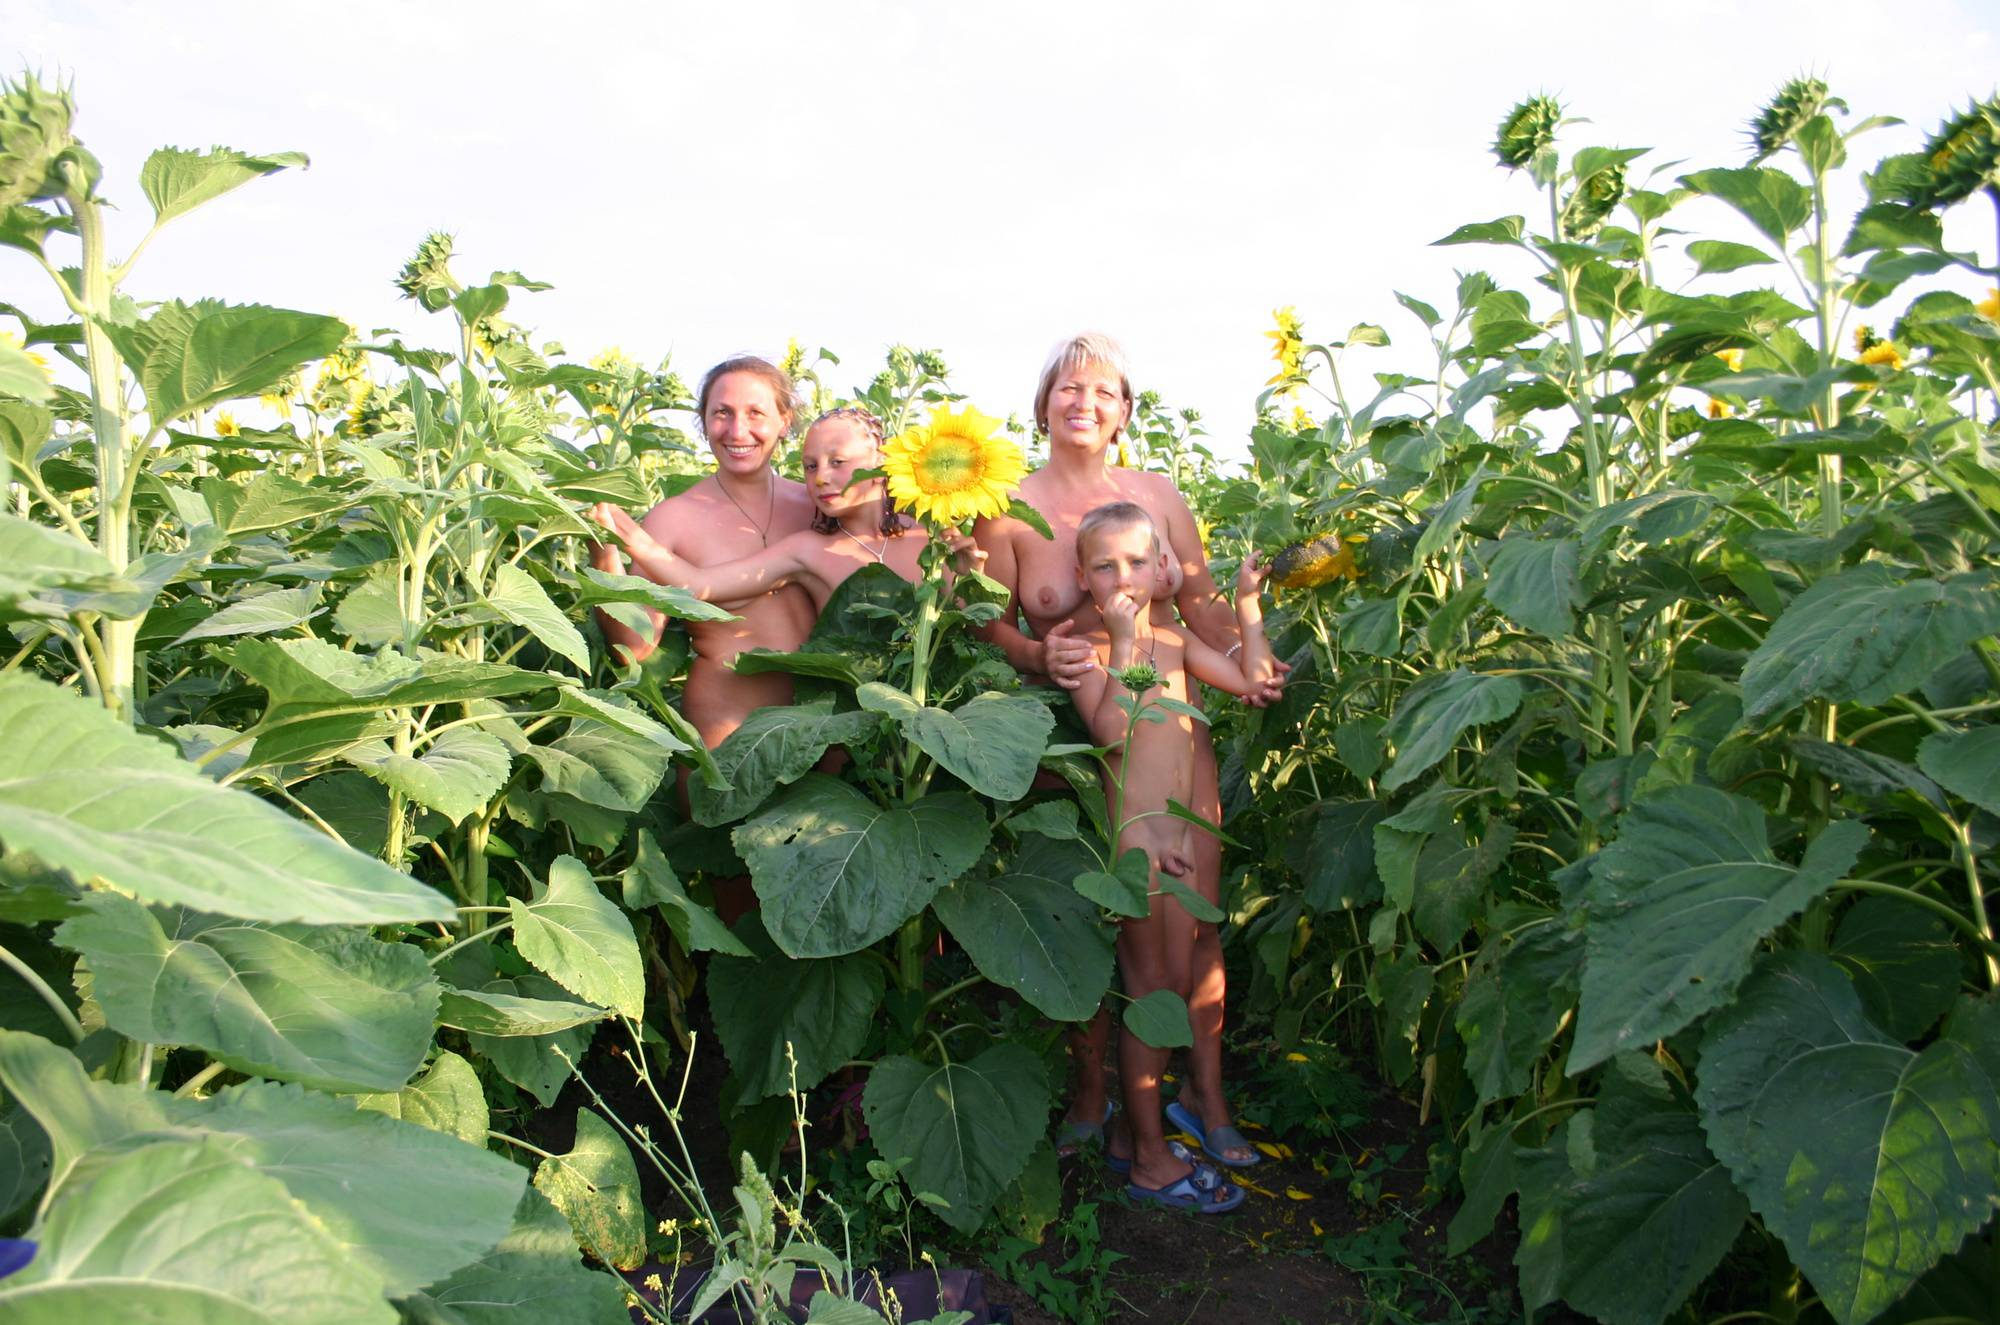 Nudist Pics Outdoor Sunflower Fields - 1